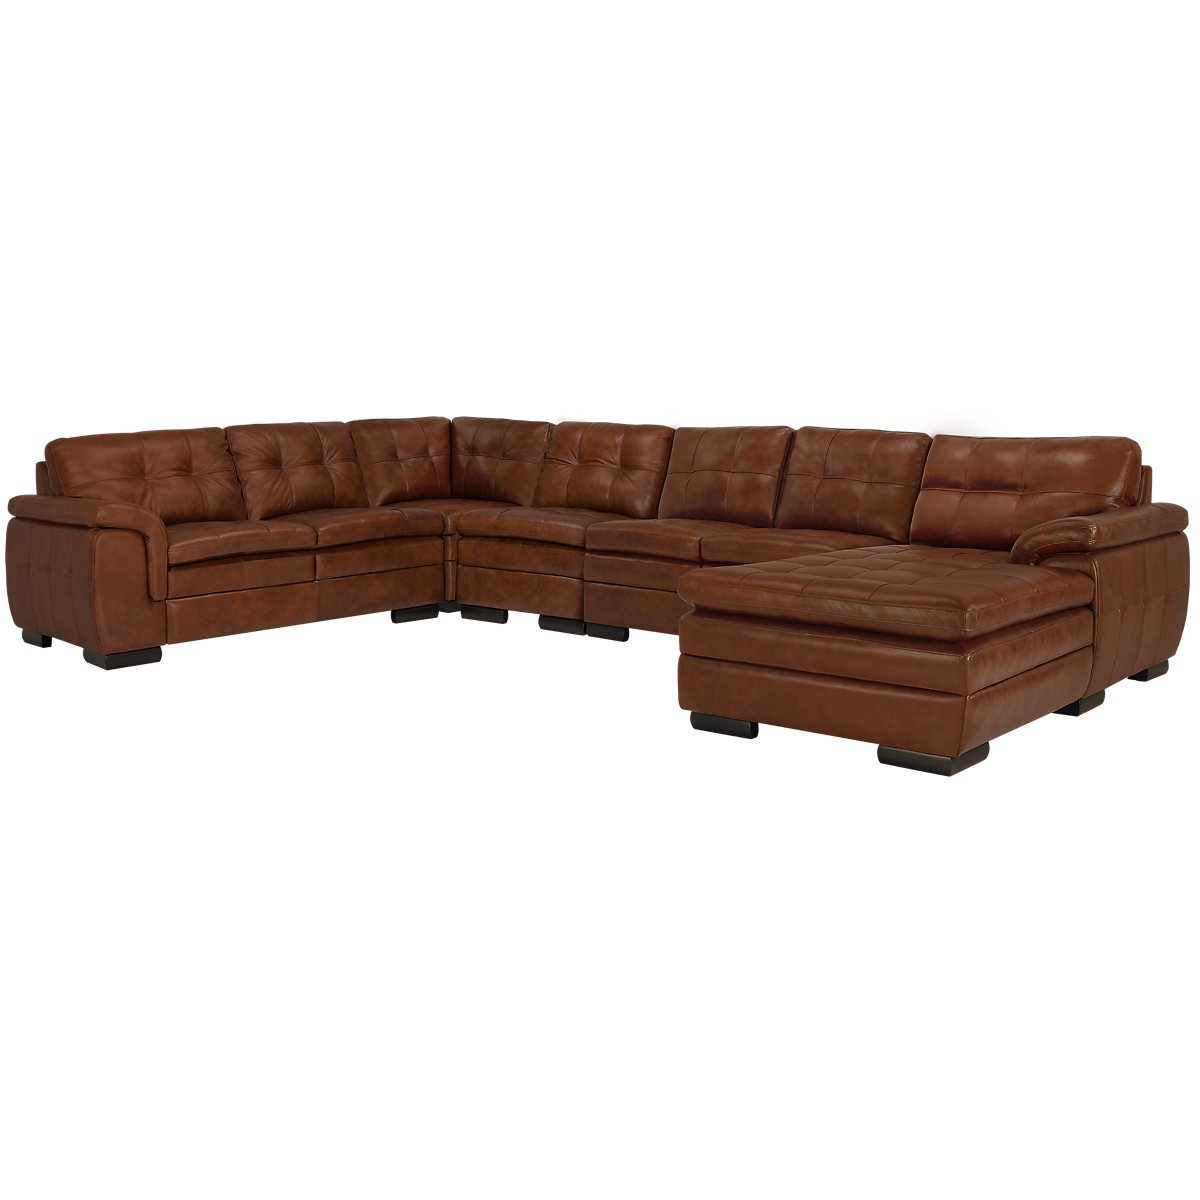 City furniture trevor medium brown leather large right for Brown leather sectional with chaise